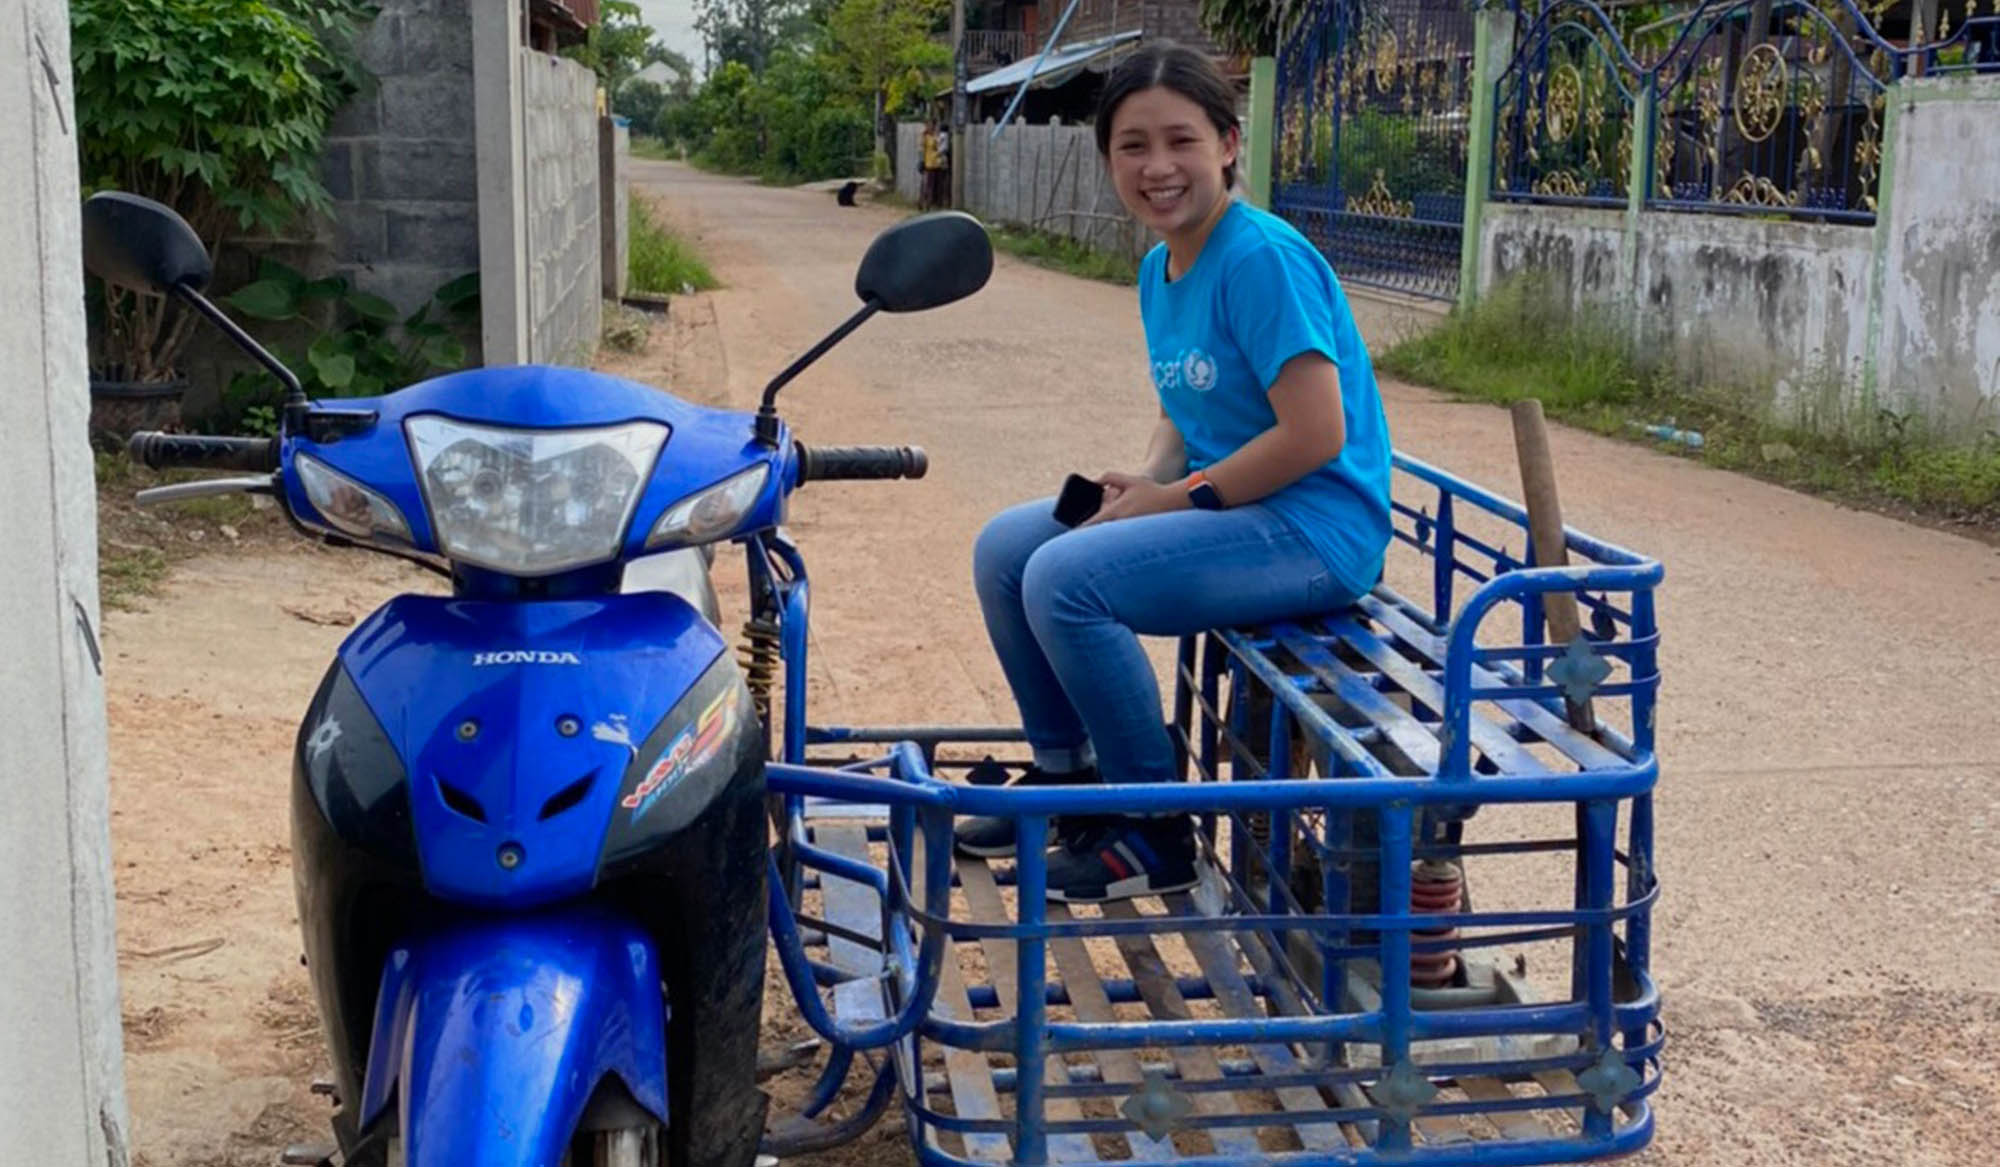 Rasa smiles at the camera as she sits on the side cart of a motorcycle at her work.